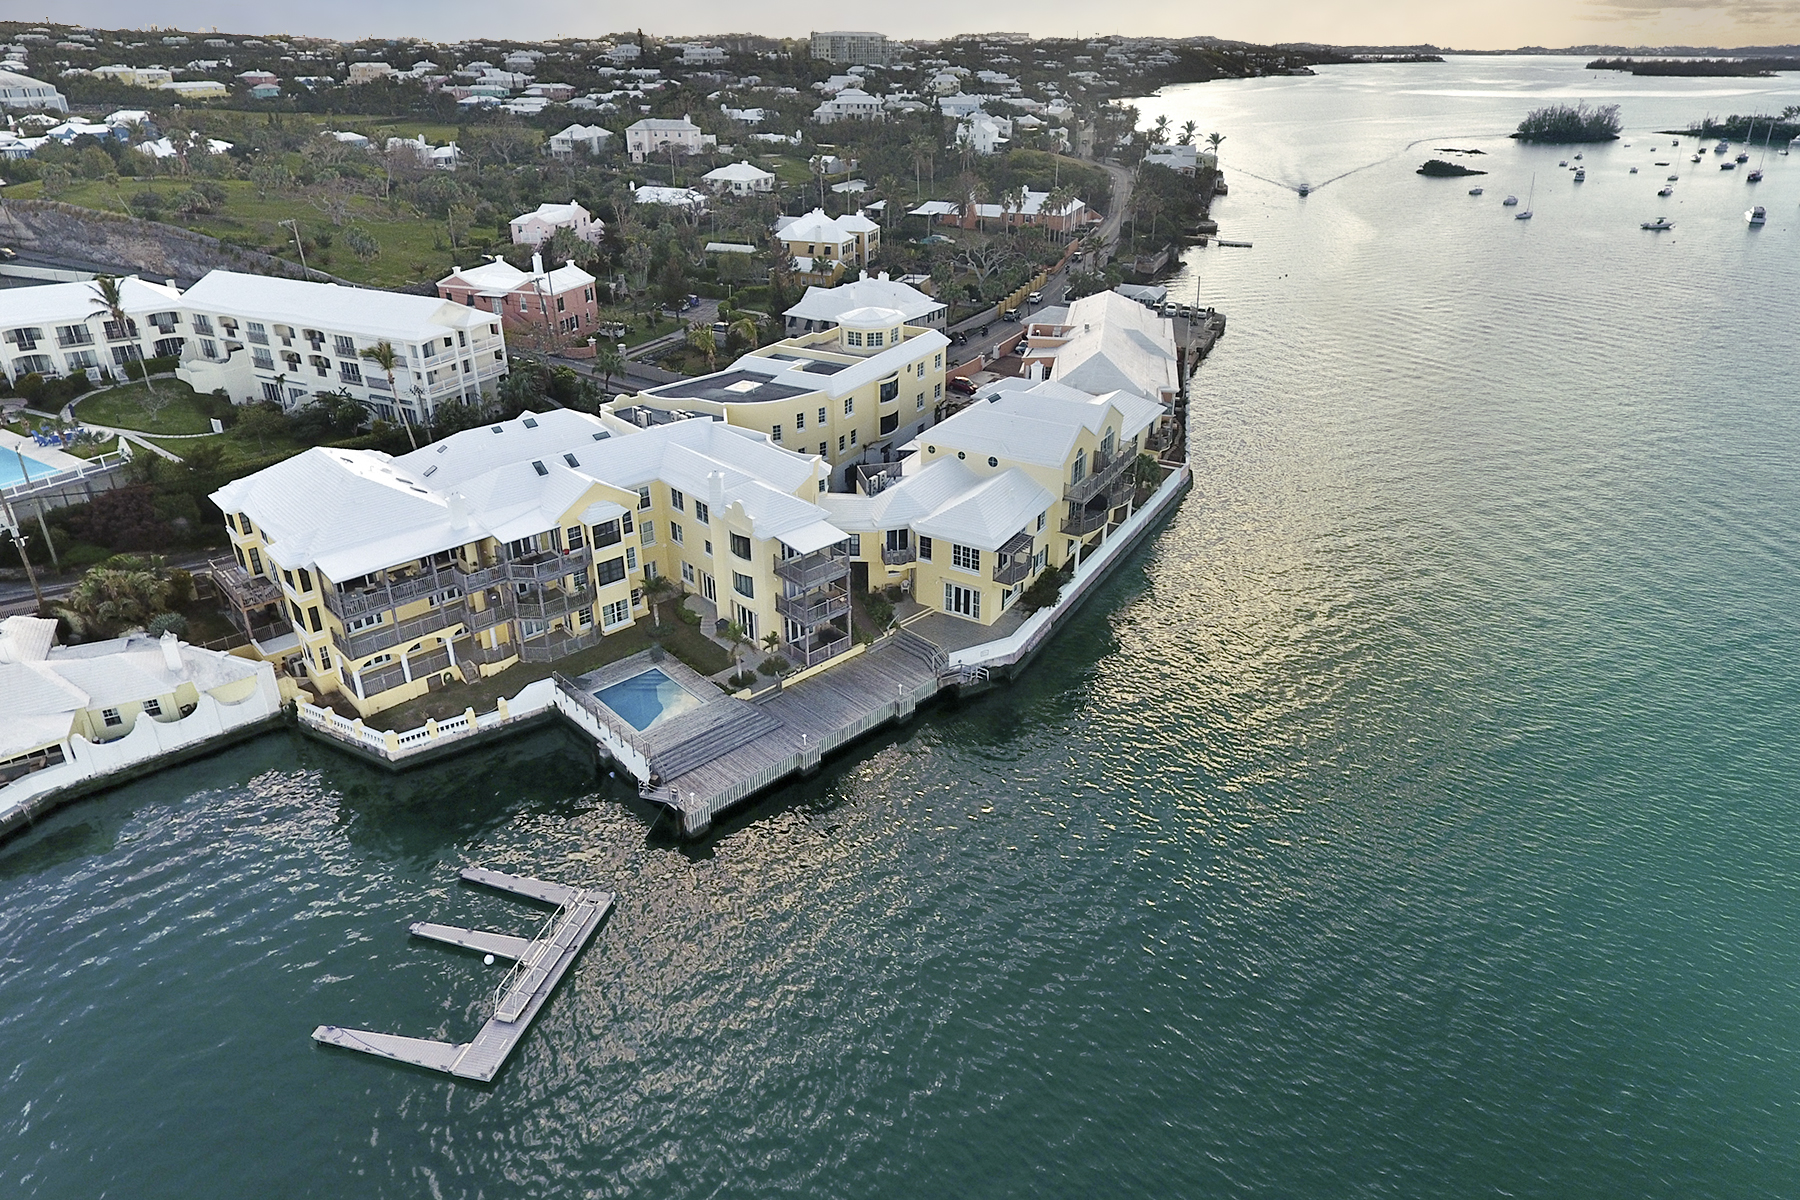 Condo / Townhouse / Flat for Sale at The Wharf Unit 17 1 Harbour Road Paget Parish, PG01 Bermuda